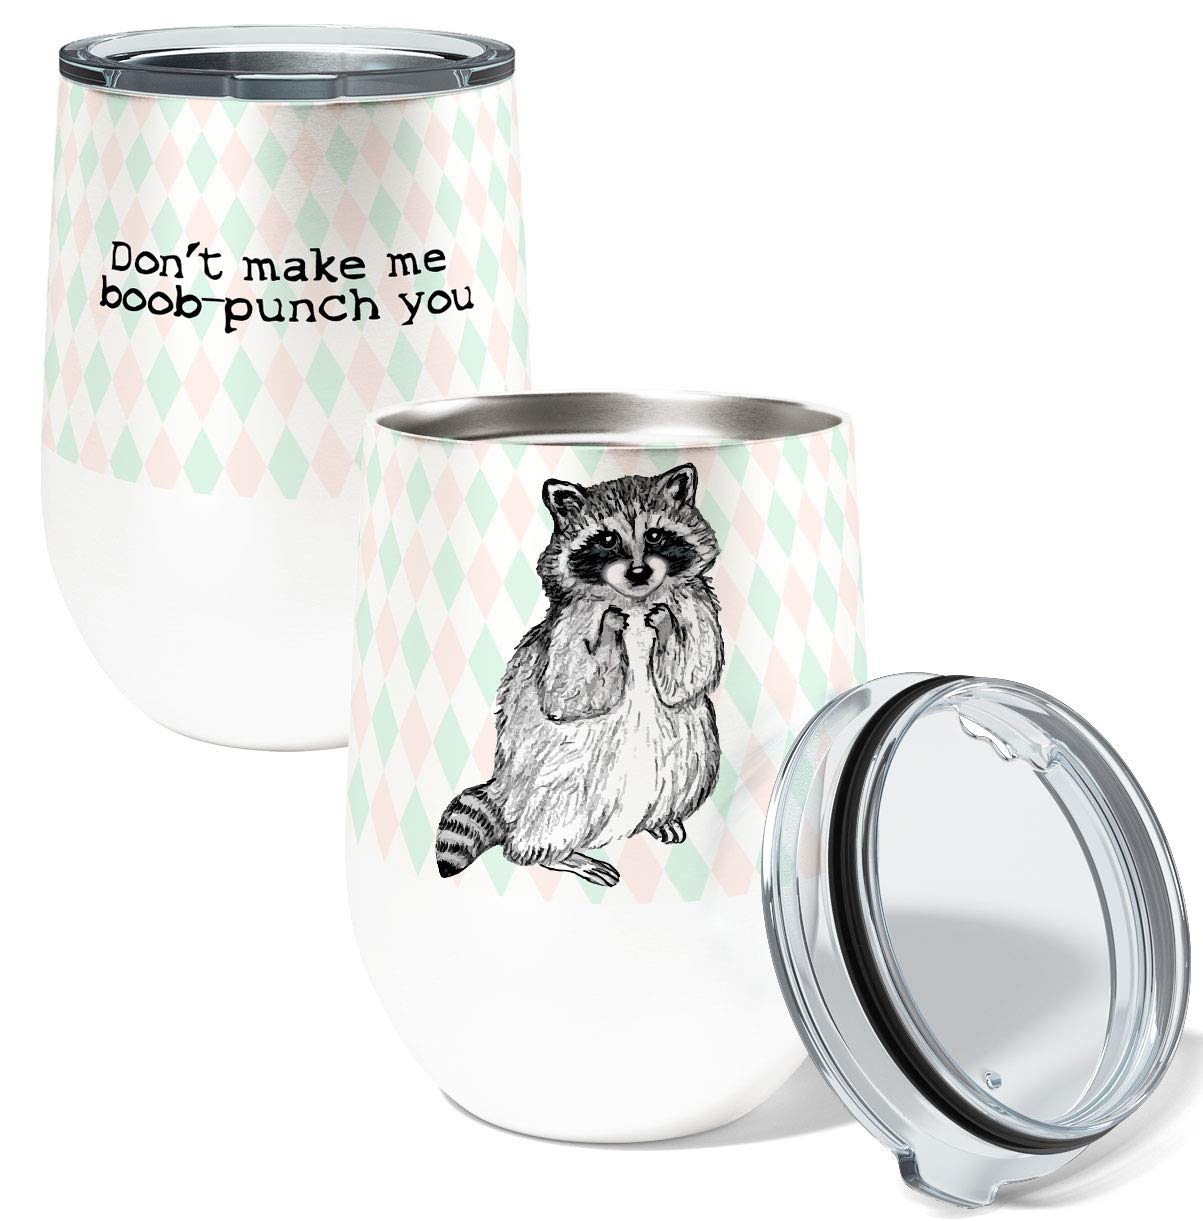 Racoon Punch Single 12 Ounce Stemless Insulated Stainless Steel Wine or Coffee Tumbler with Clear Lid by Pithitude